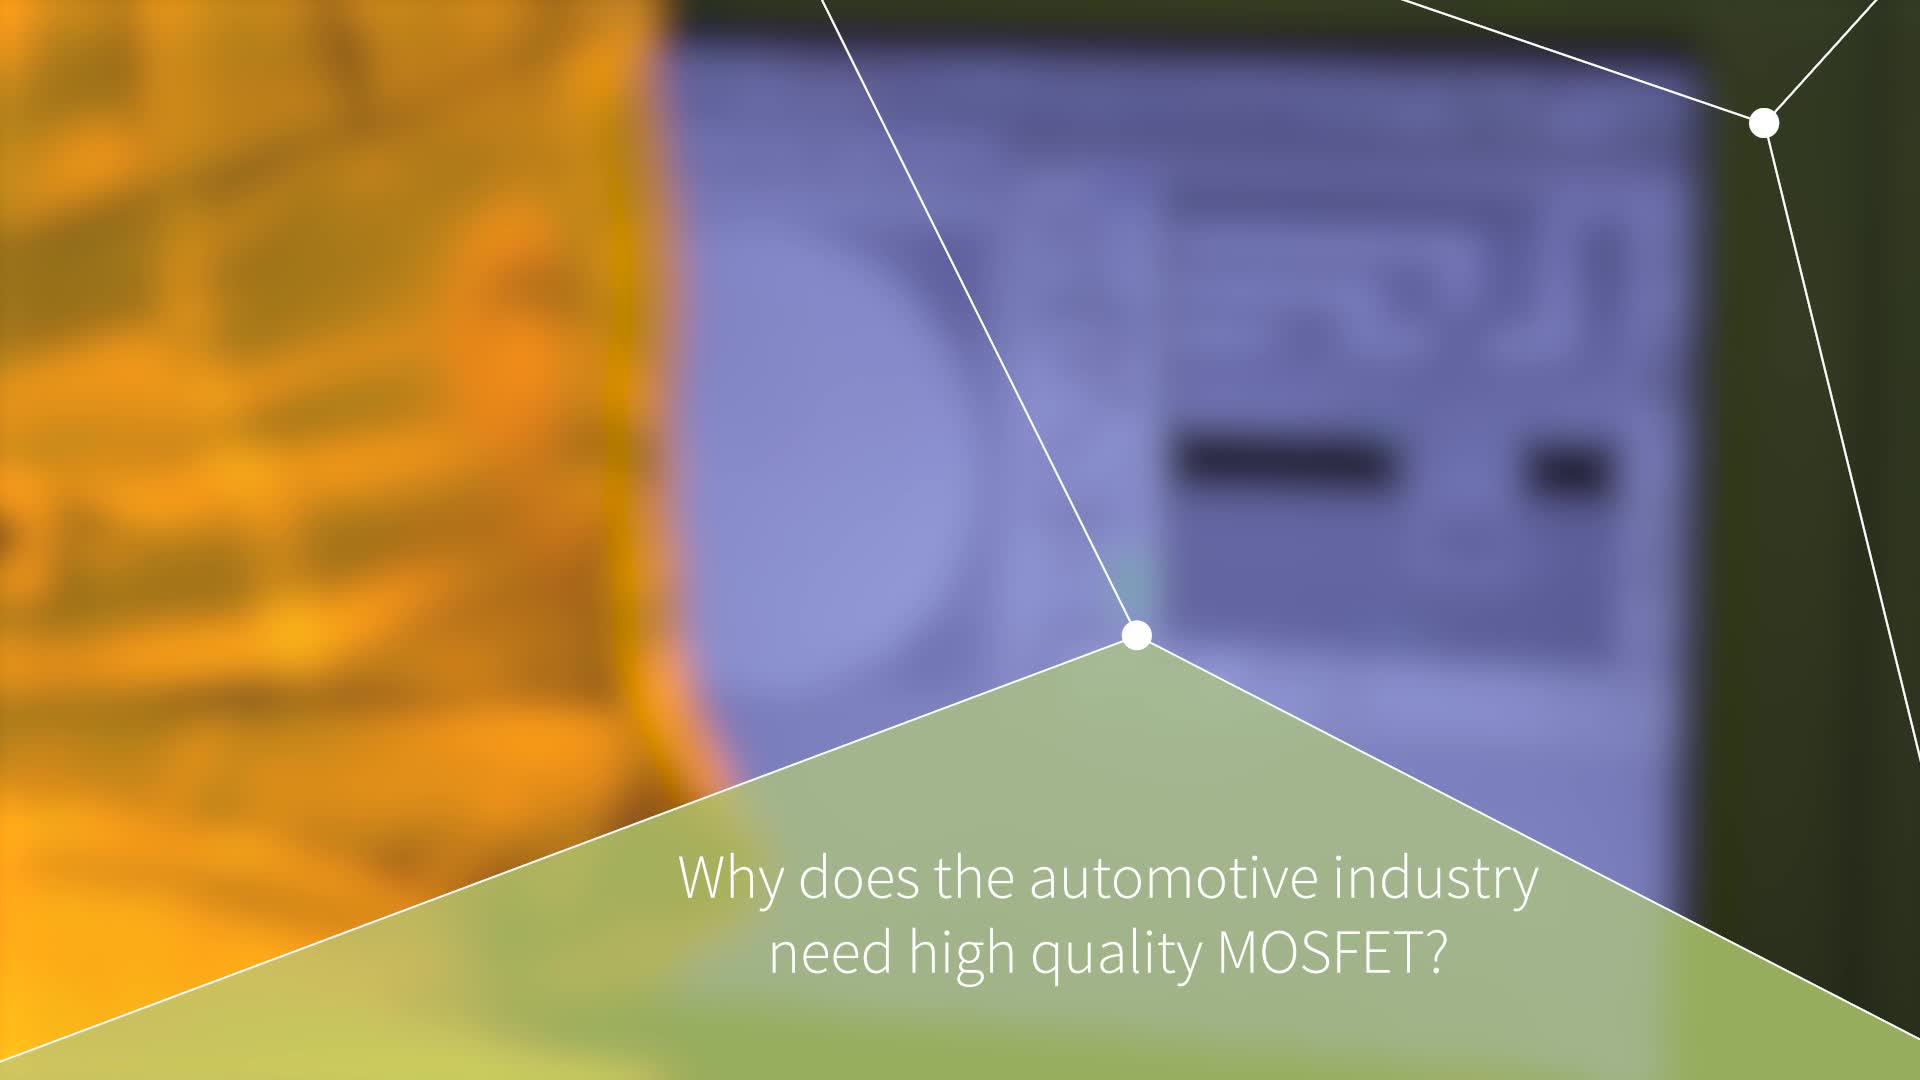 Why does automotive industry need high quality MOSFET?